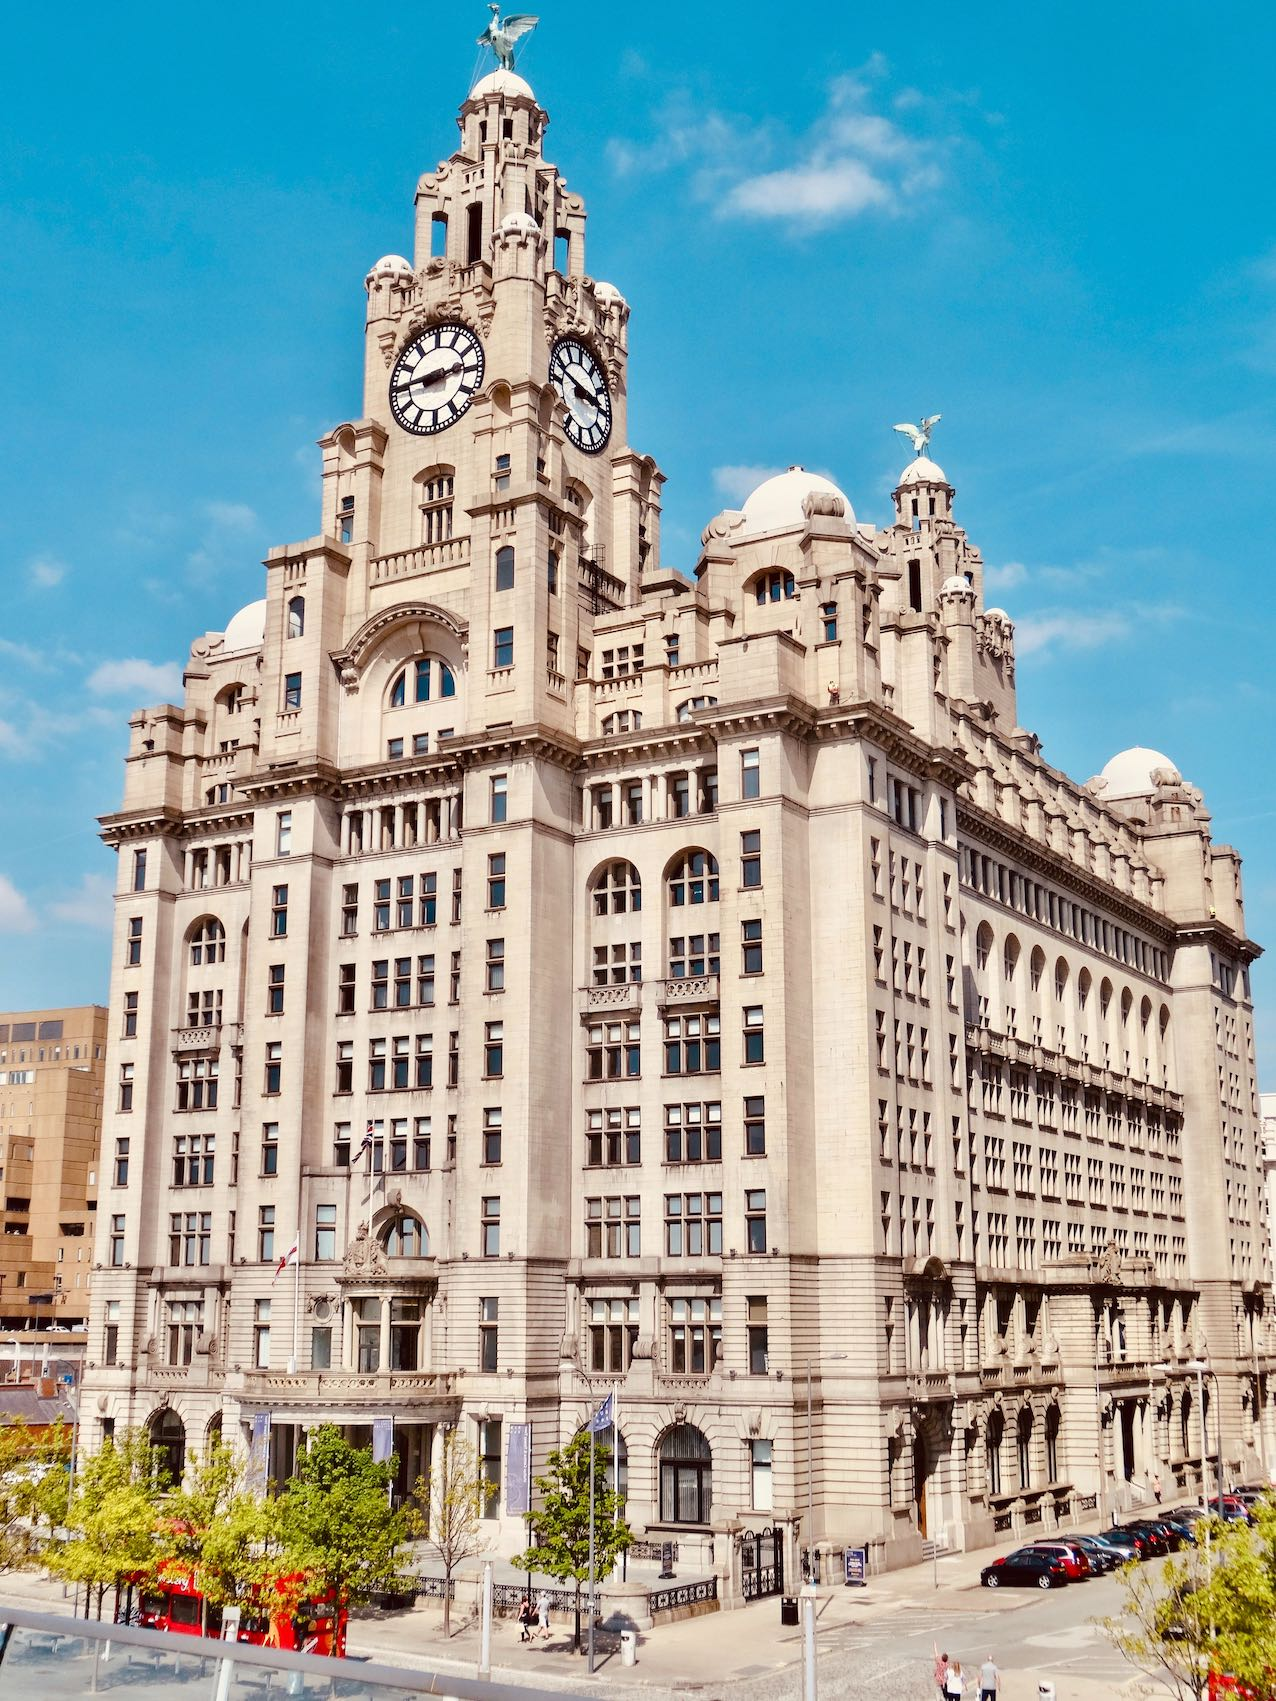 The Royal Liver Building in Liverpool.